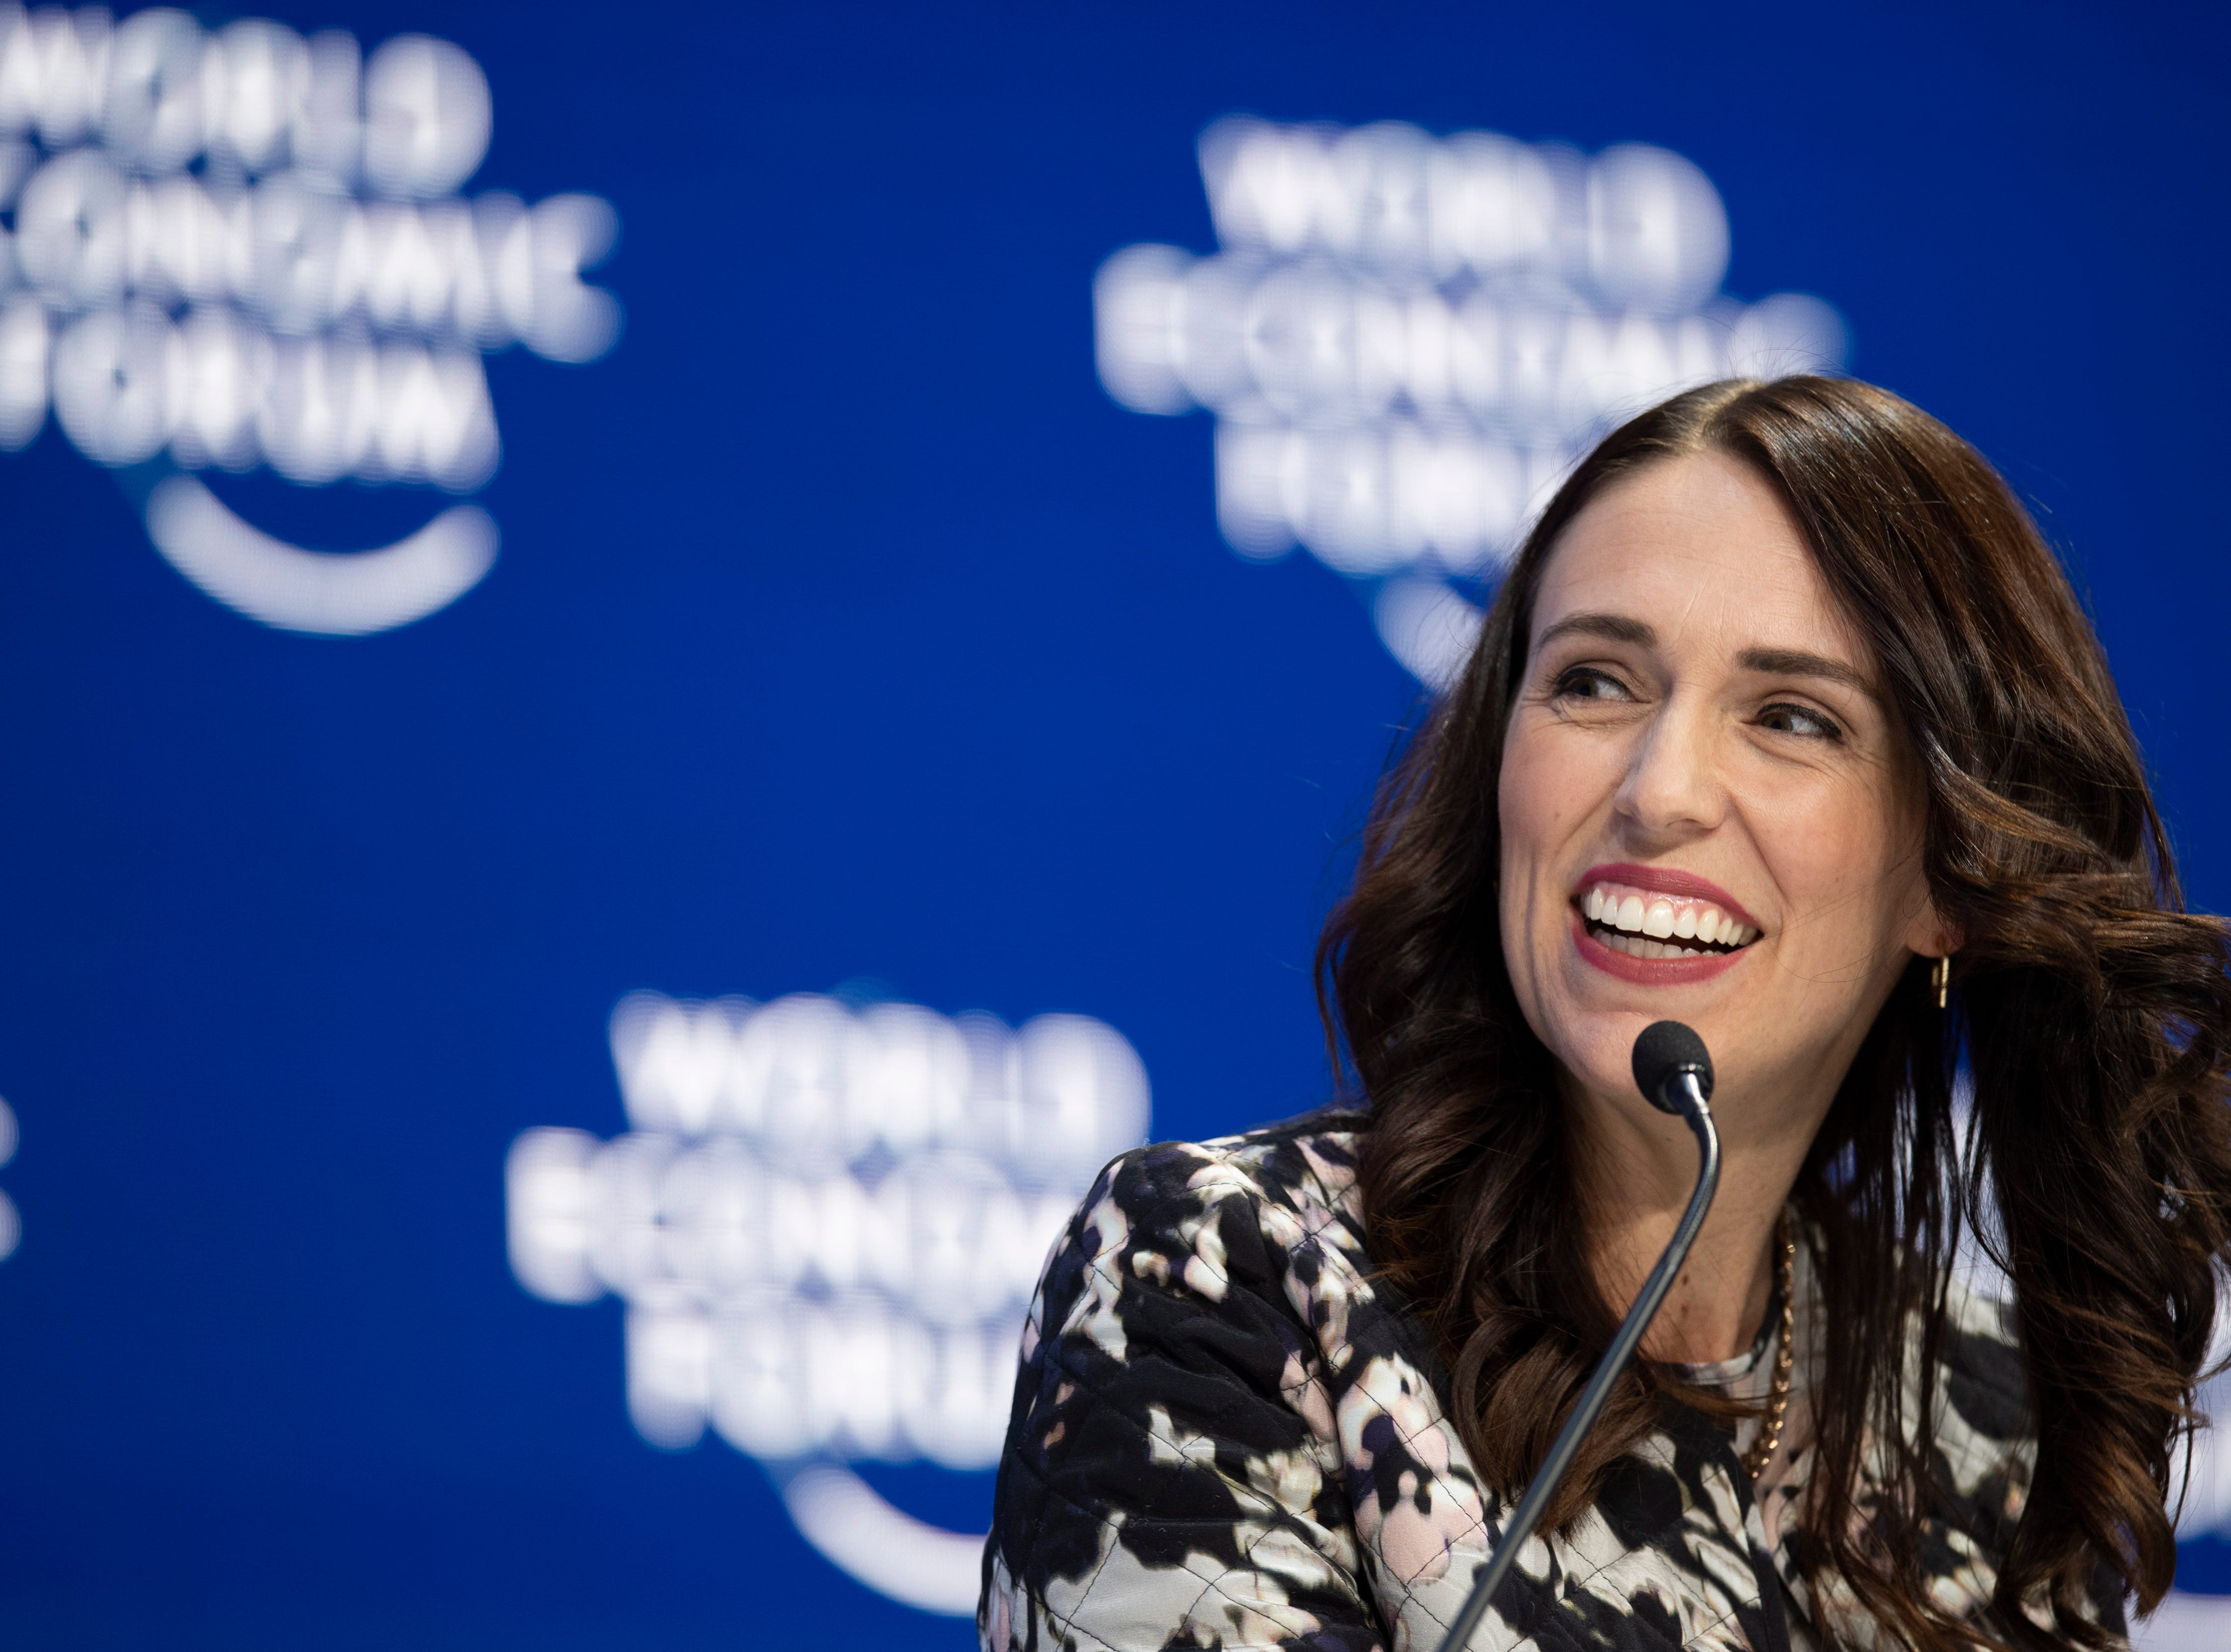 Jacinda Ardern, Prime Minister of New Zealand, during a plenary session in the Congress Hall of the 49th annual meeting of the World Economic Forum, WEF, in Davos, Switzerland on Jan. 22, 2019. The meeting brings together entrepreneurs, scientists, corporate and political leaders in Davos.